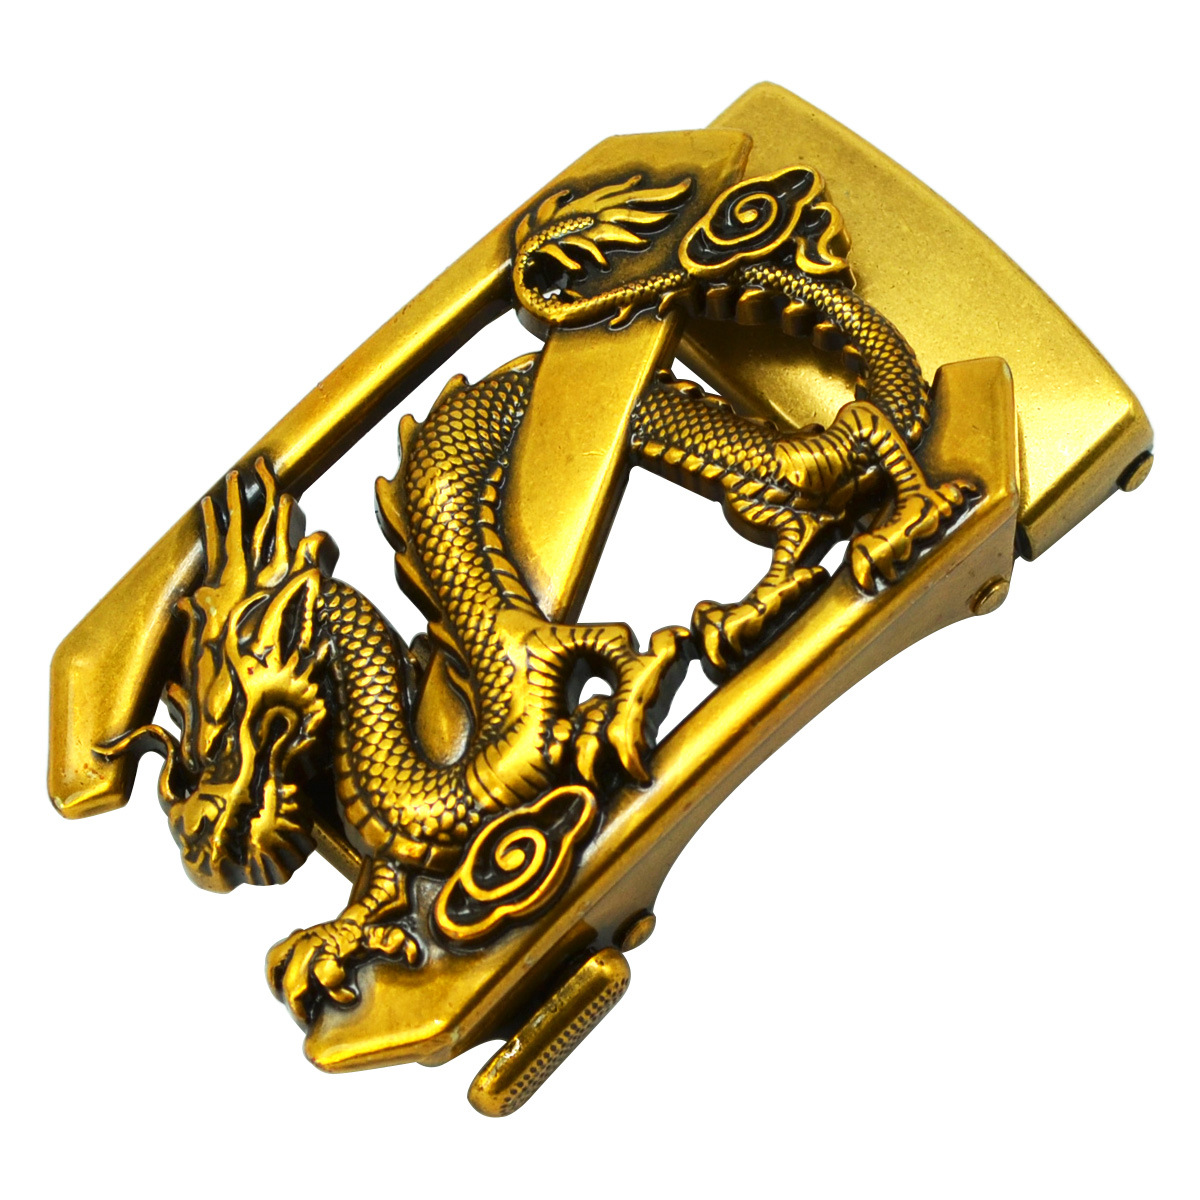 Gold Dragon Belt Buckle Head Men's Automatic Belt Buckles Business Accessories Dropshipping 2019